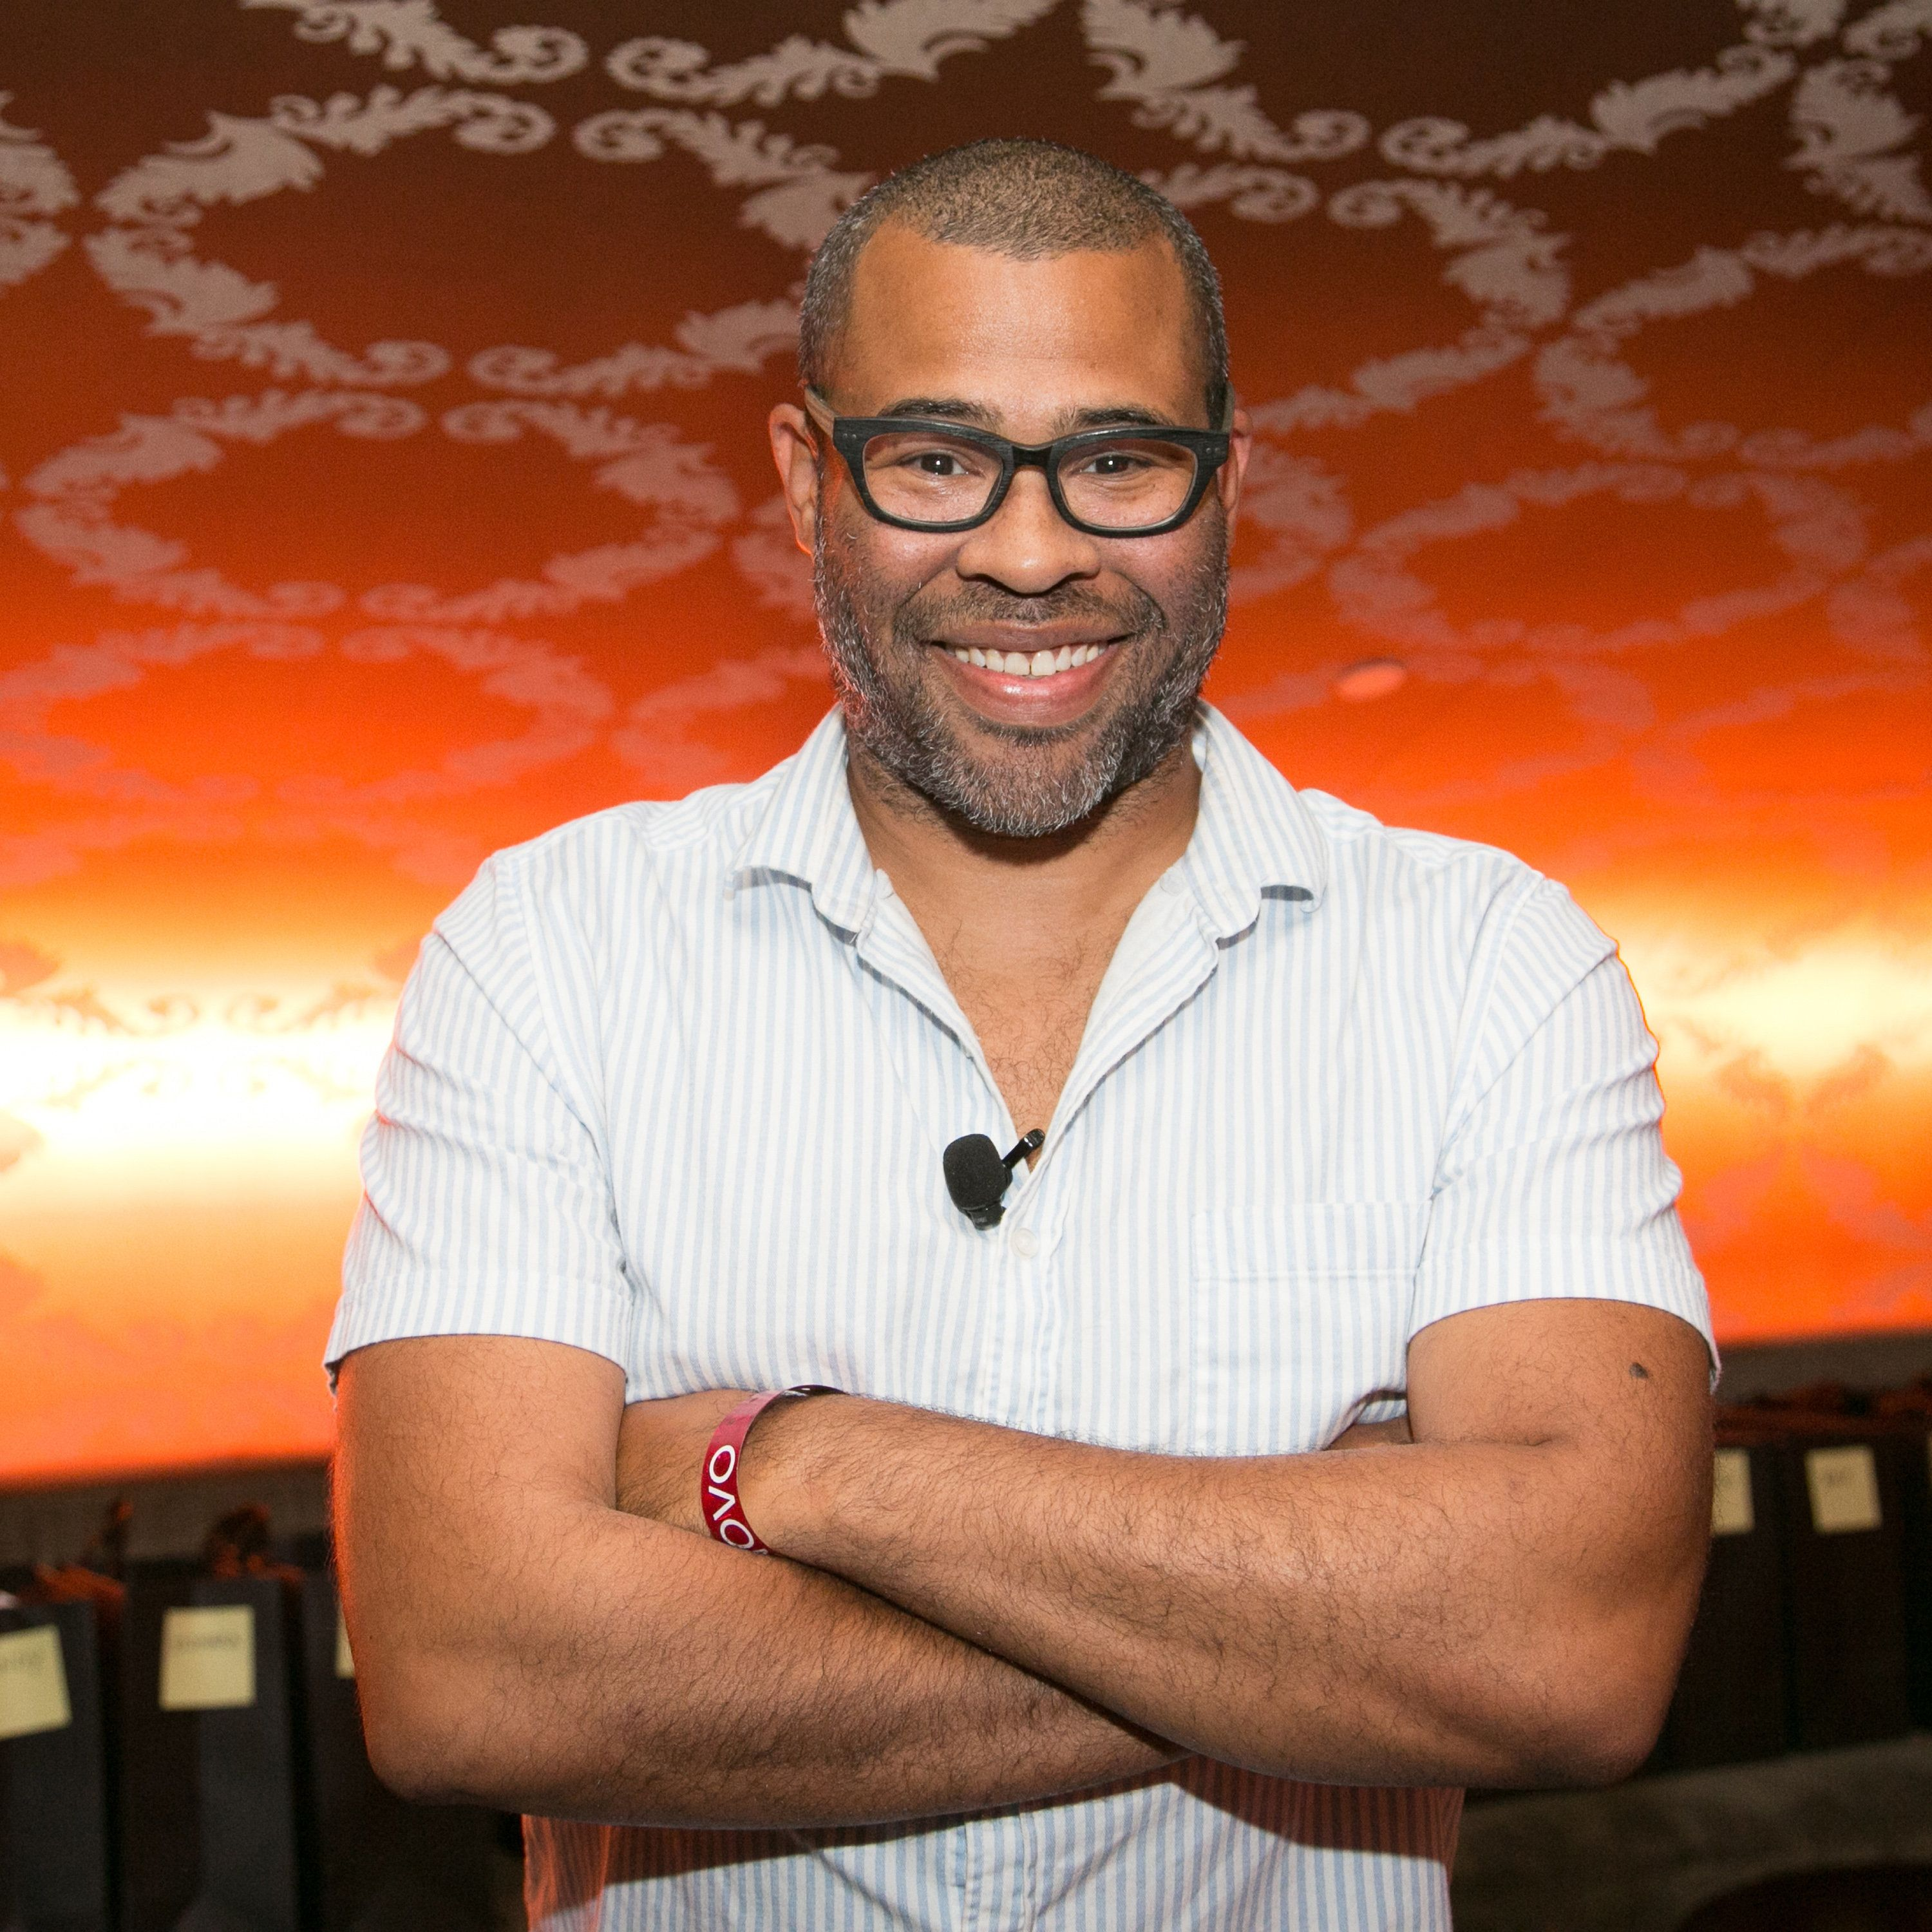 LOS ANGELES, CA - OCTOBER 20:  Jordan Peele attends the Young Storytellers' 13th Annual Signature Event at The Novo by Microsoft on October 20, 2016 in Los Angeles, California.  (Photo by Gabriel Olsen/FilmMagic)